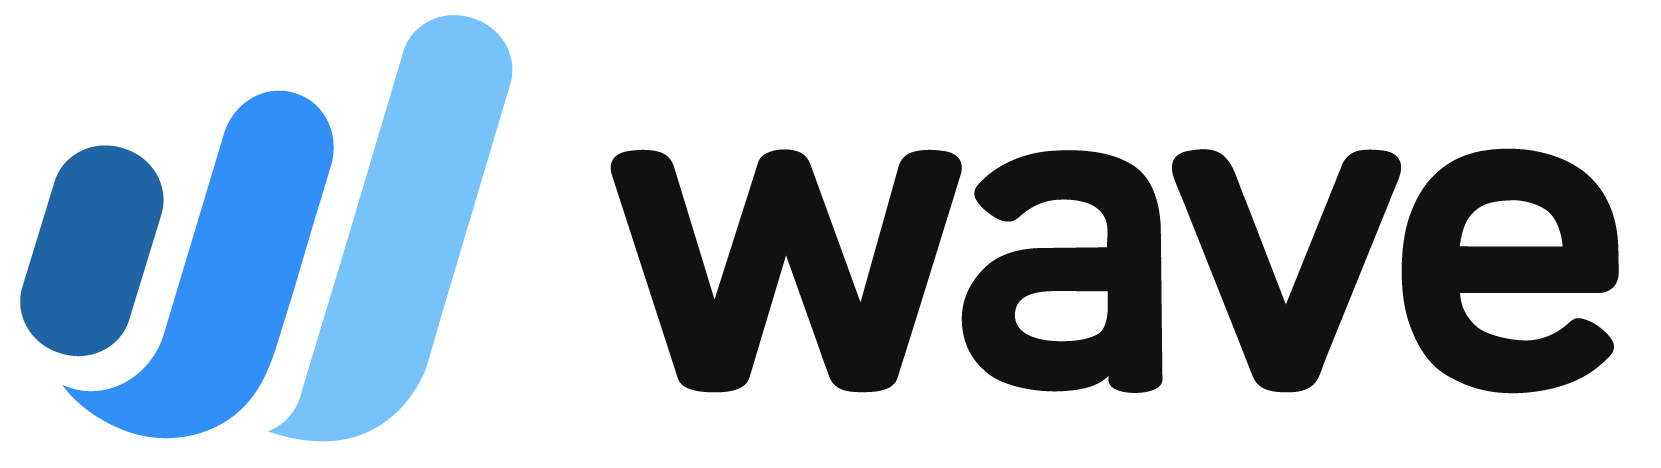 Wave S Competitors Revenue Number Of Employees Funding Acquisitions News Owler Company Profile